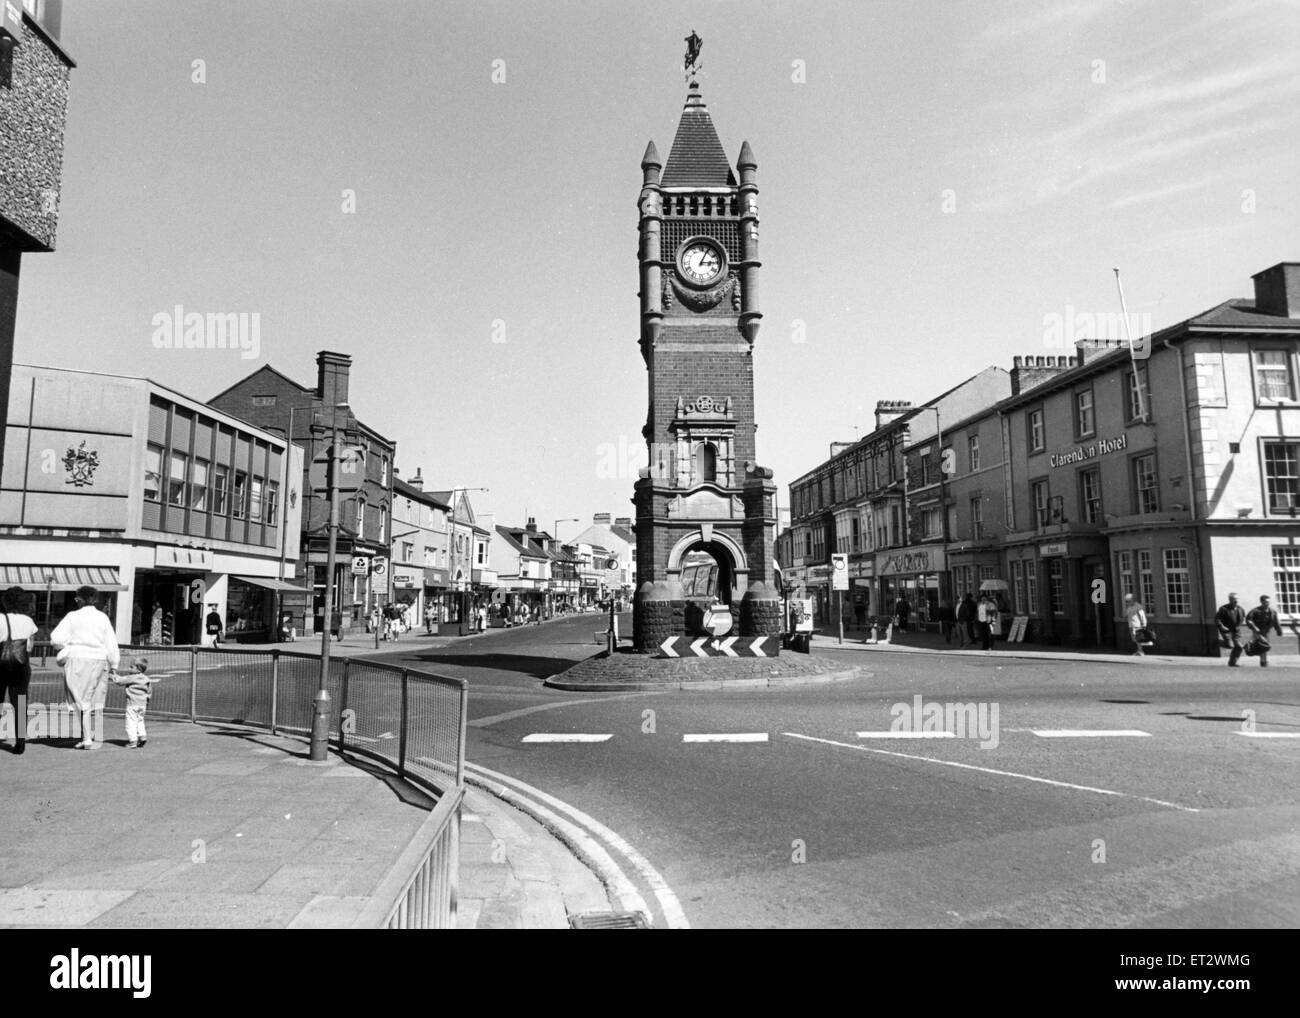 Clock Tower, Redcar, 5th July 1993 - Stock Image